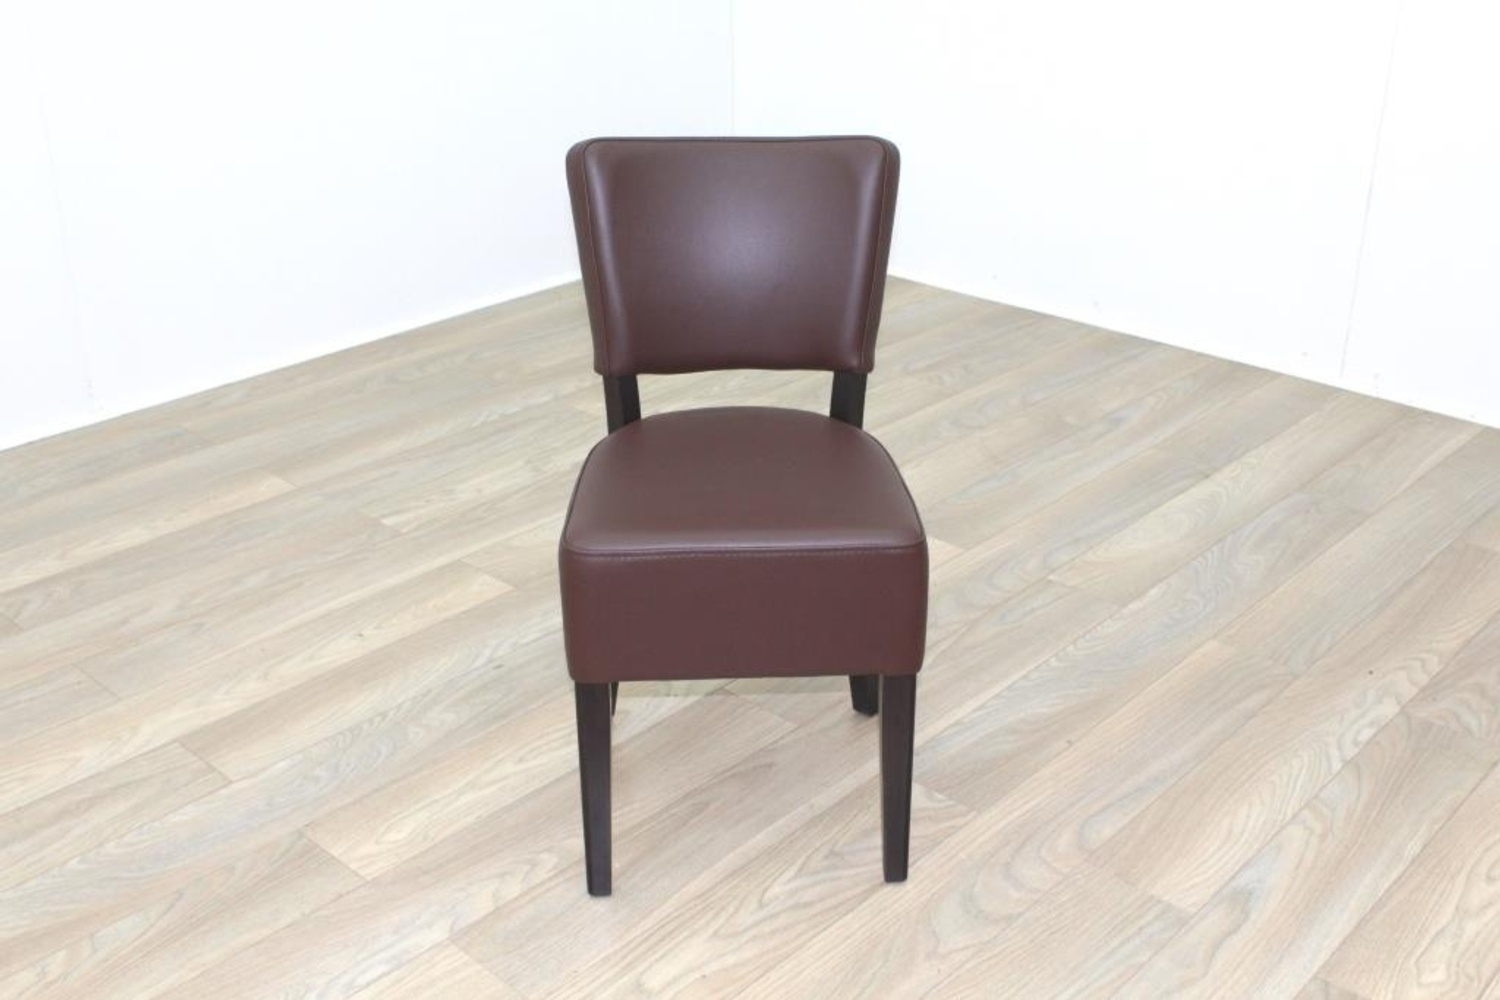 quality leather dining chairs swivel chair ebay new brown contract restaurant cafe